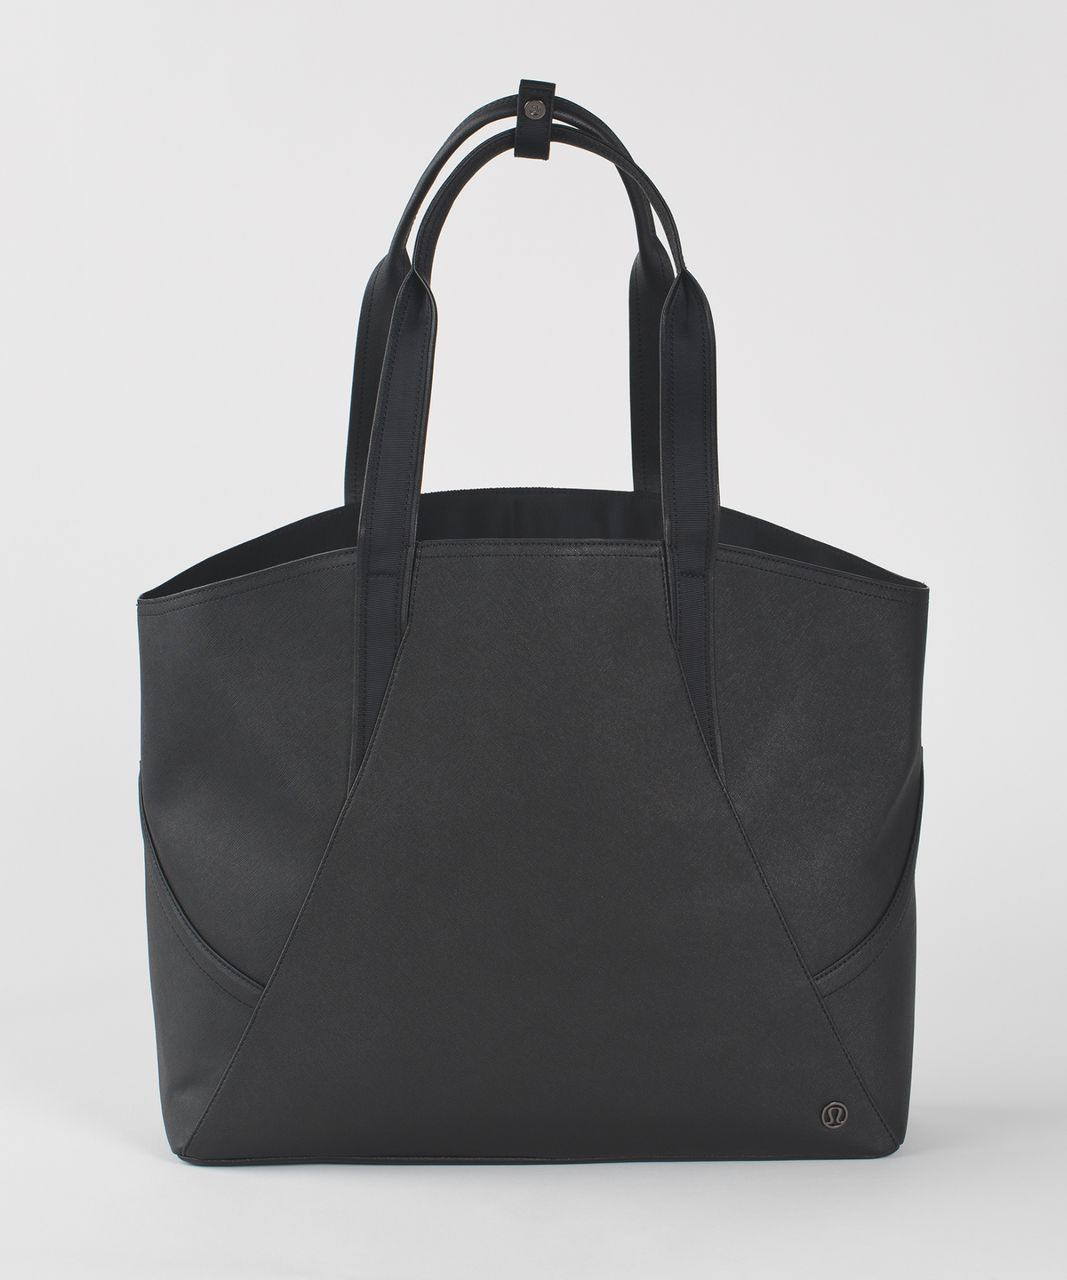 8e247a1c12 Lululemon All Day Tote - Black - lulu fanatics